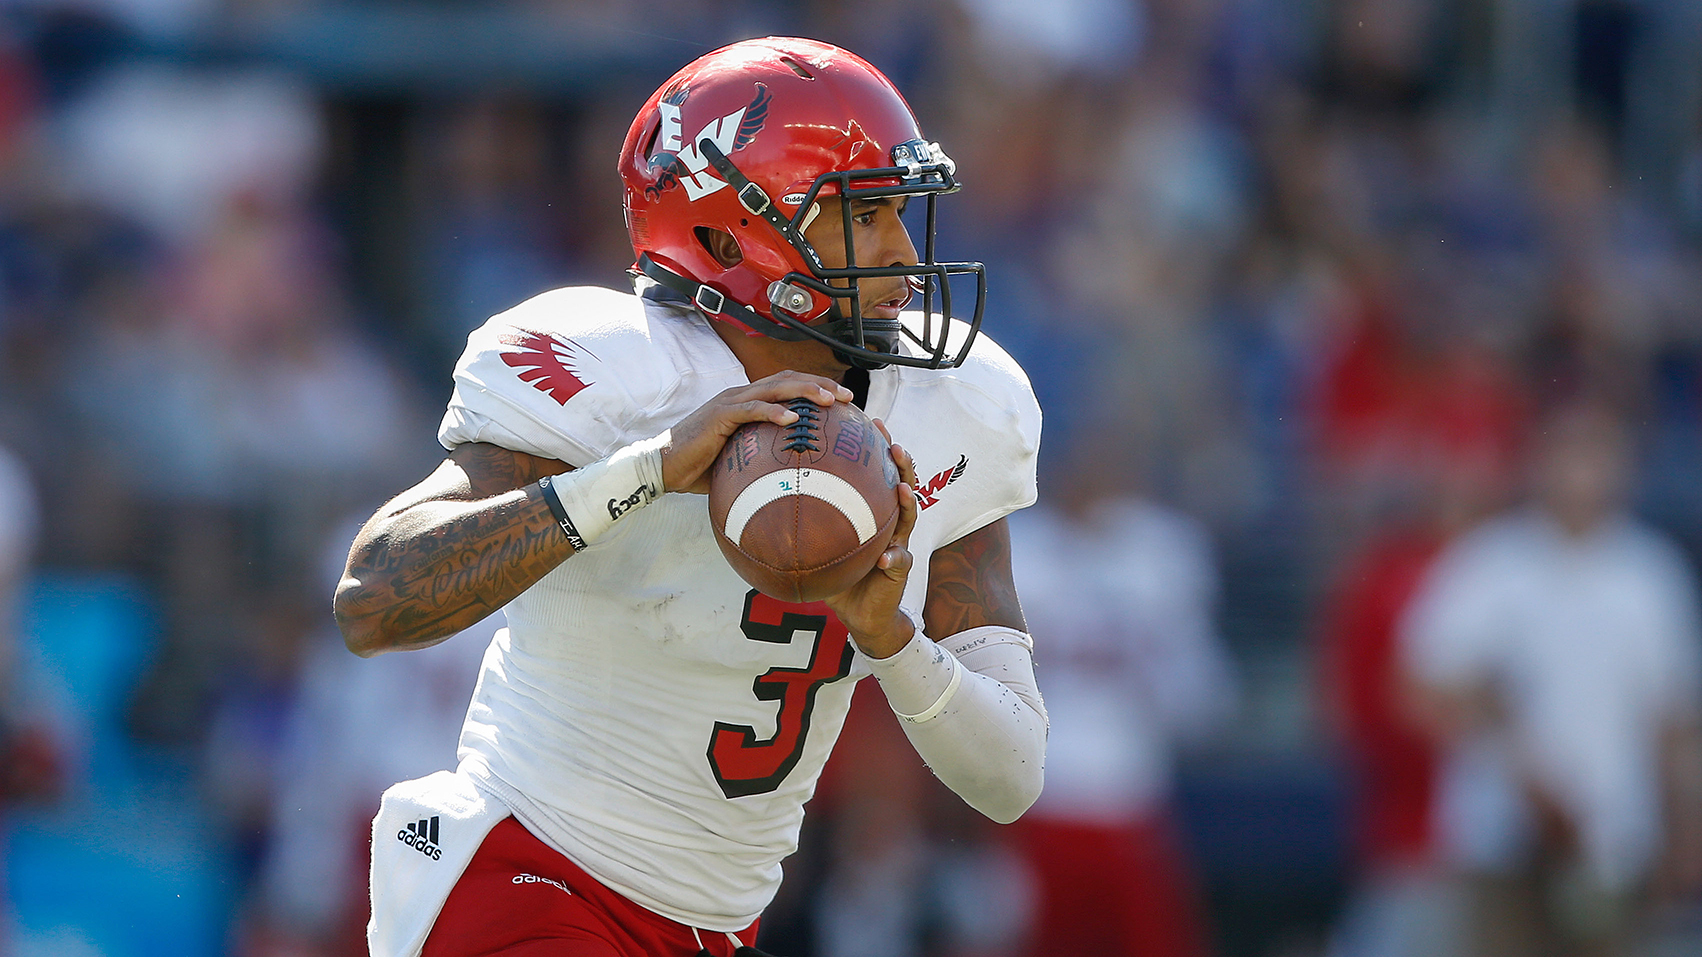 Eastern Washington transfer Vernon Adams should be able to keep Oregon's offense potent in 2015.